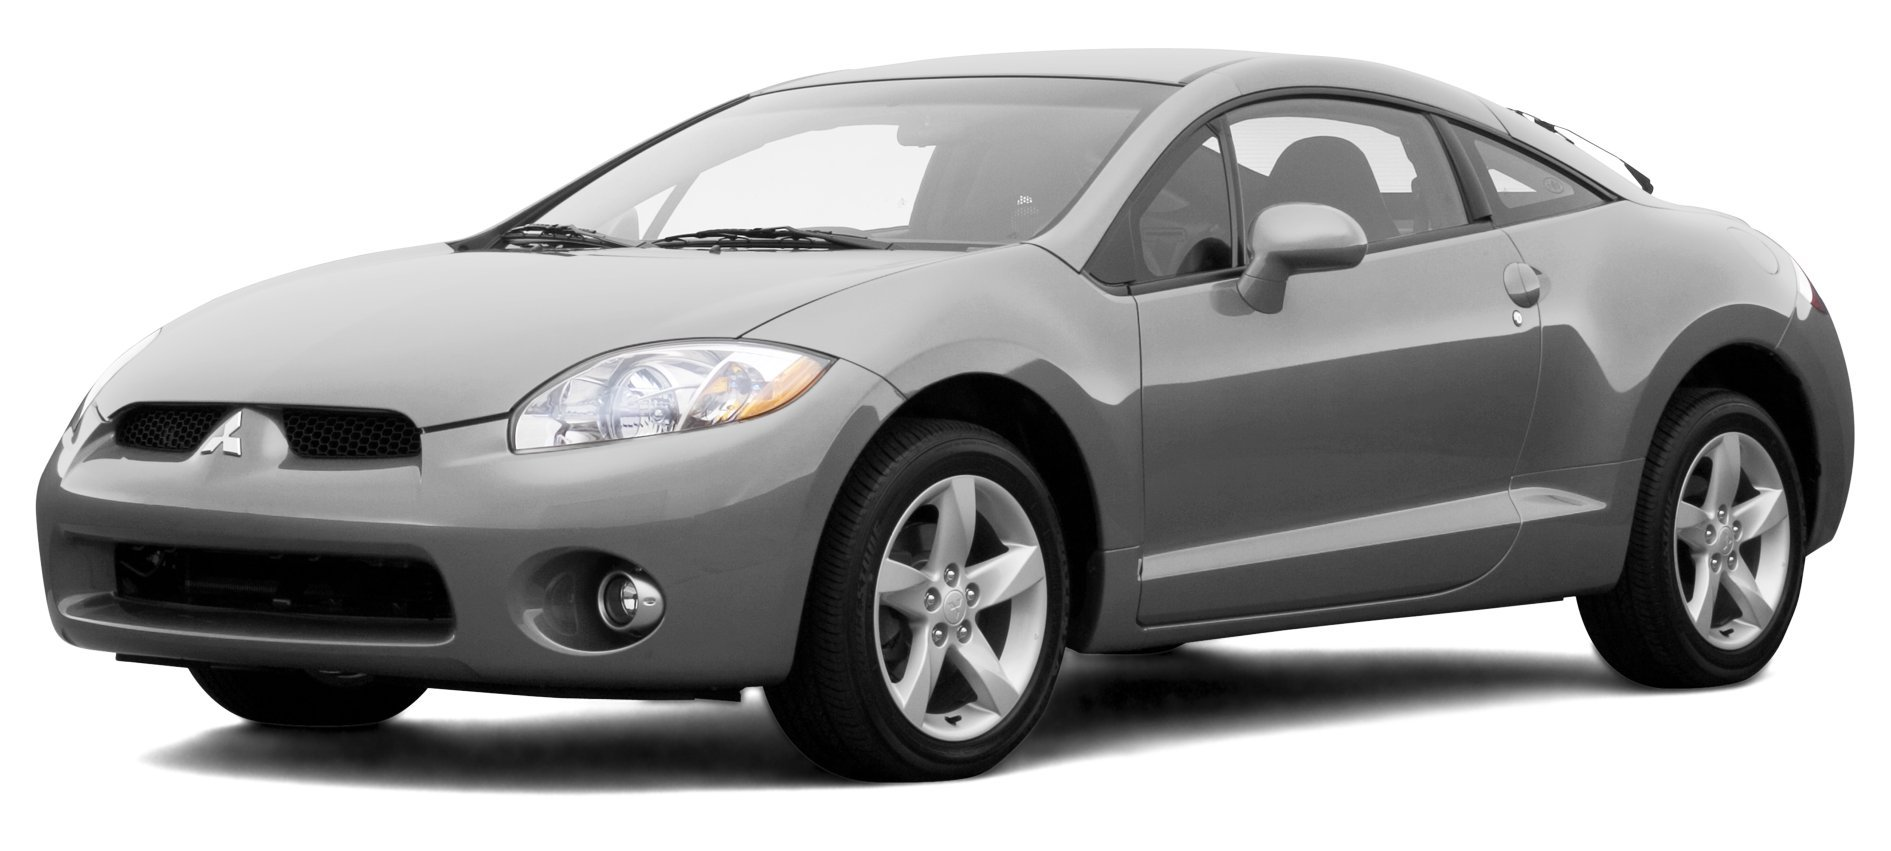 ... 2007 Mitsubishi Eclipse GS, 3-Door Coupe Sportronic Automatic  Transmission ...